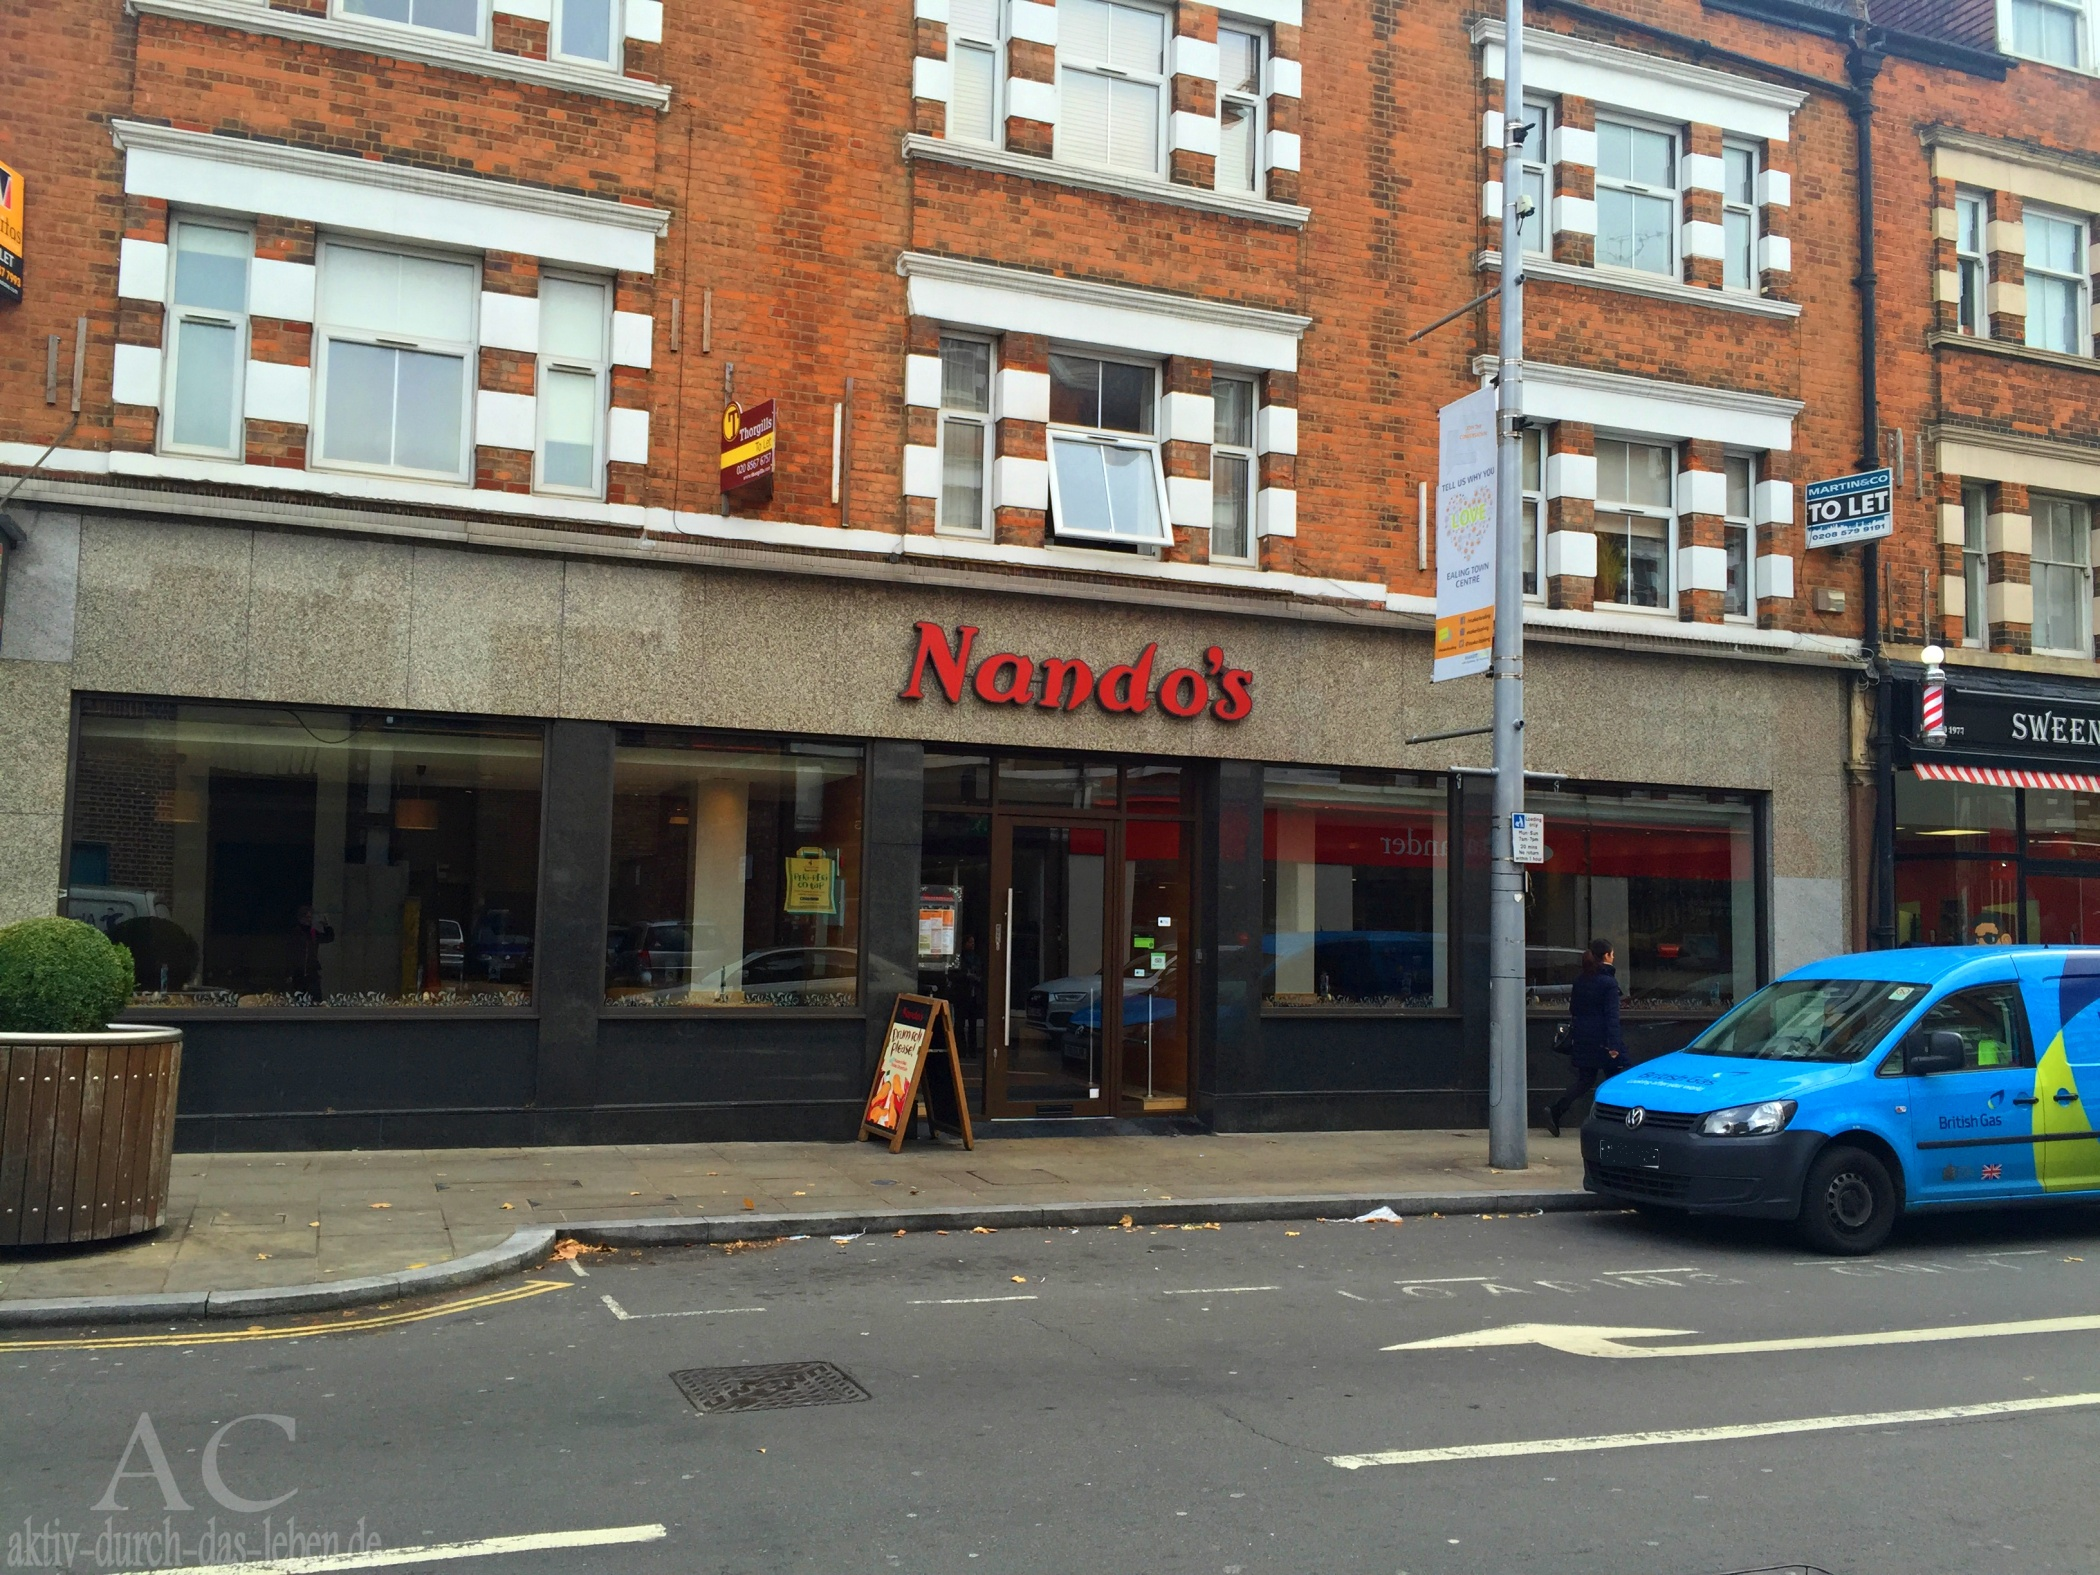 Nando's London Ealing